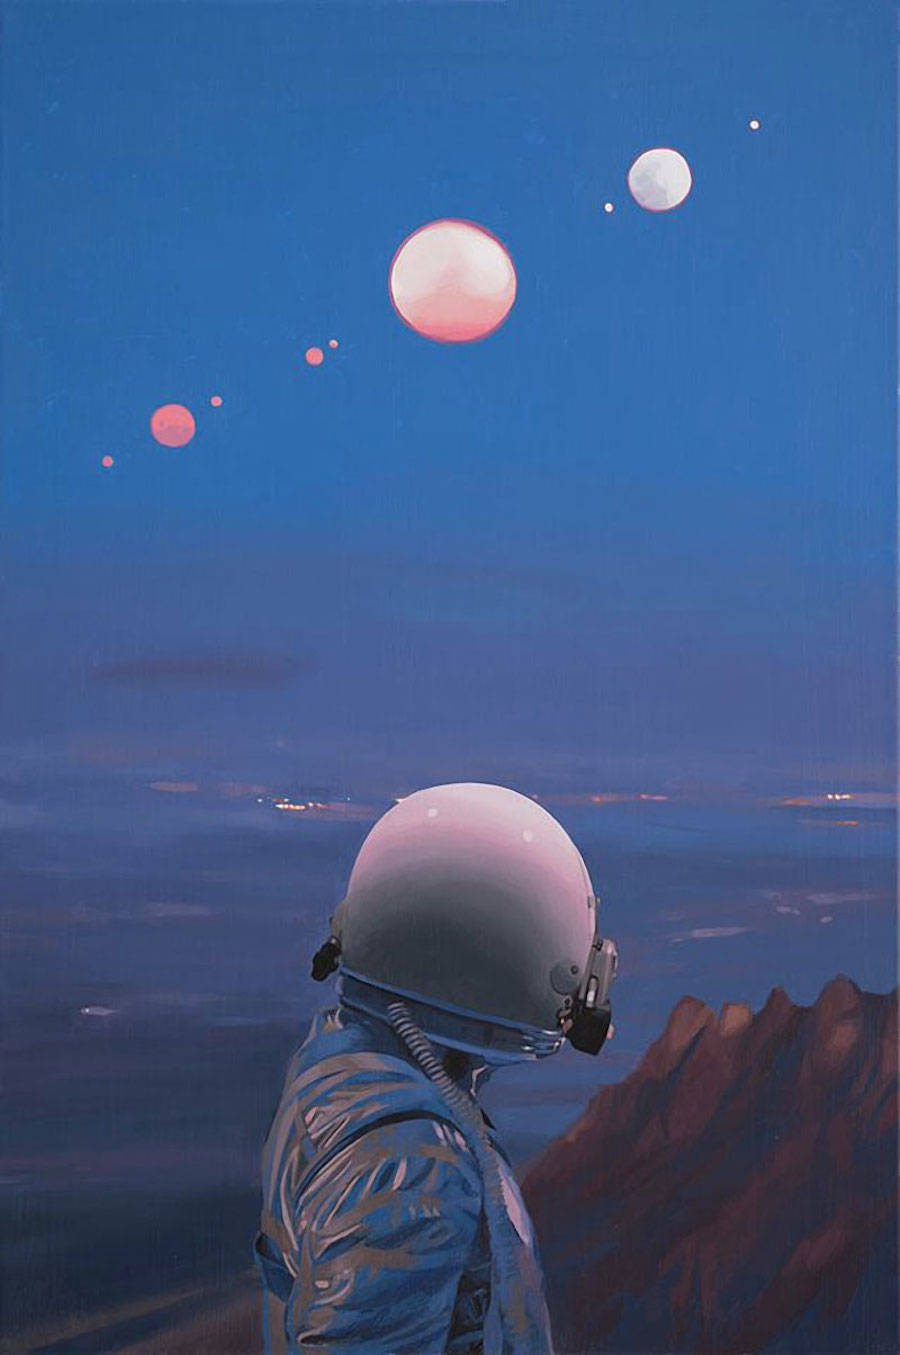 Paintings of Astronaut in Unusual Scenes